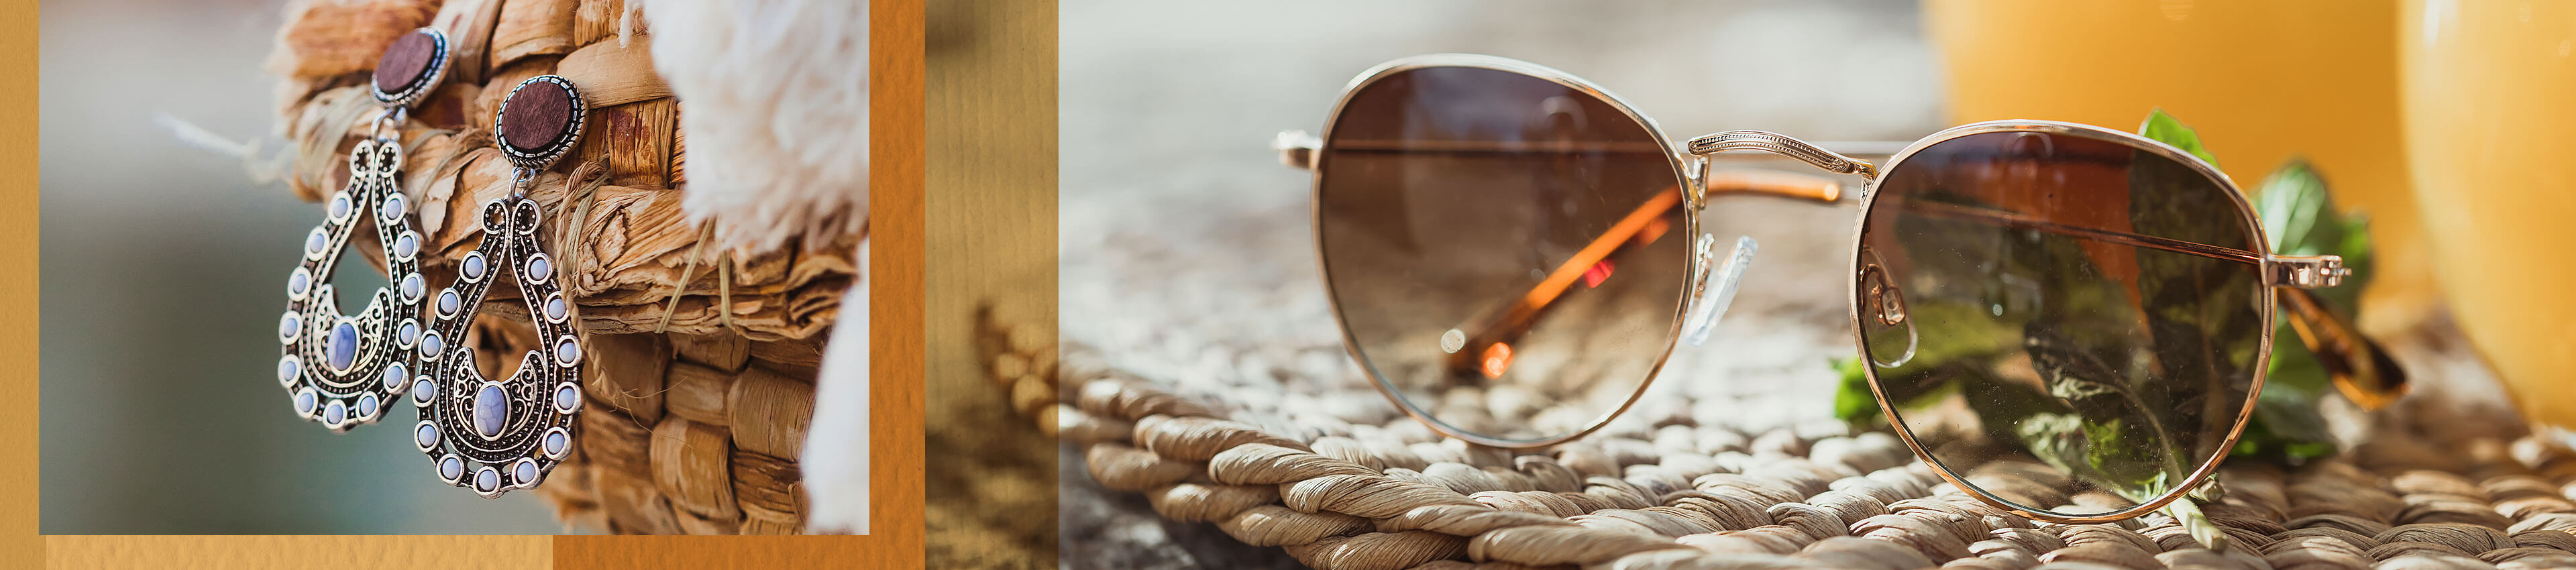 A pair of women's silver earrings and a pair of women's sunglasses